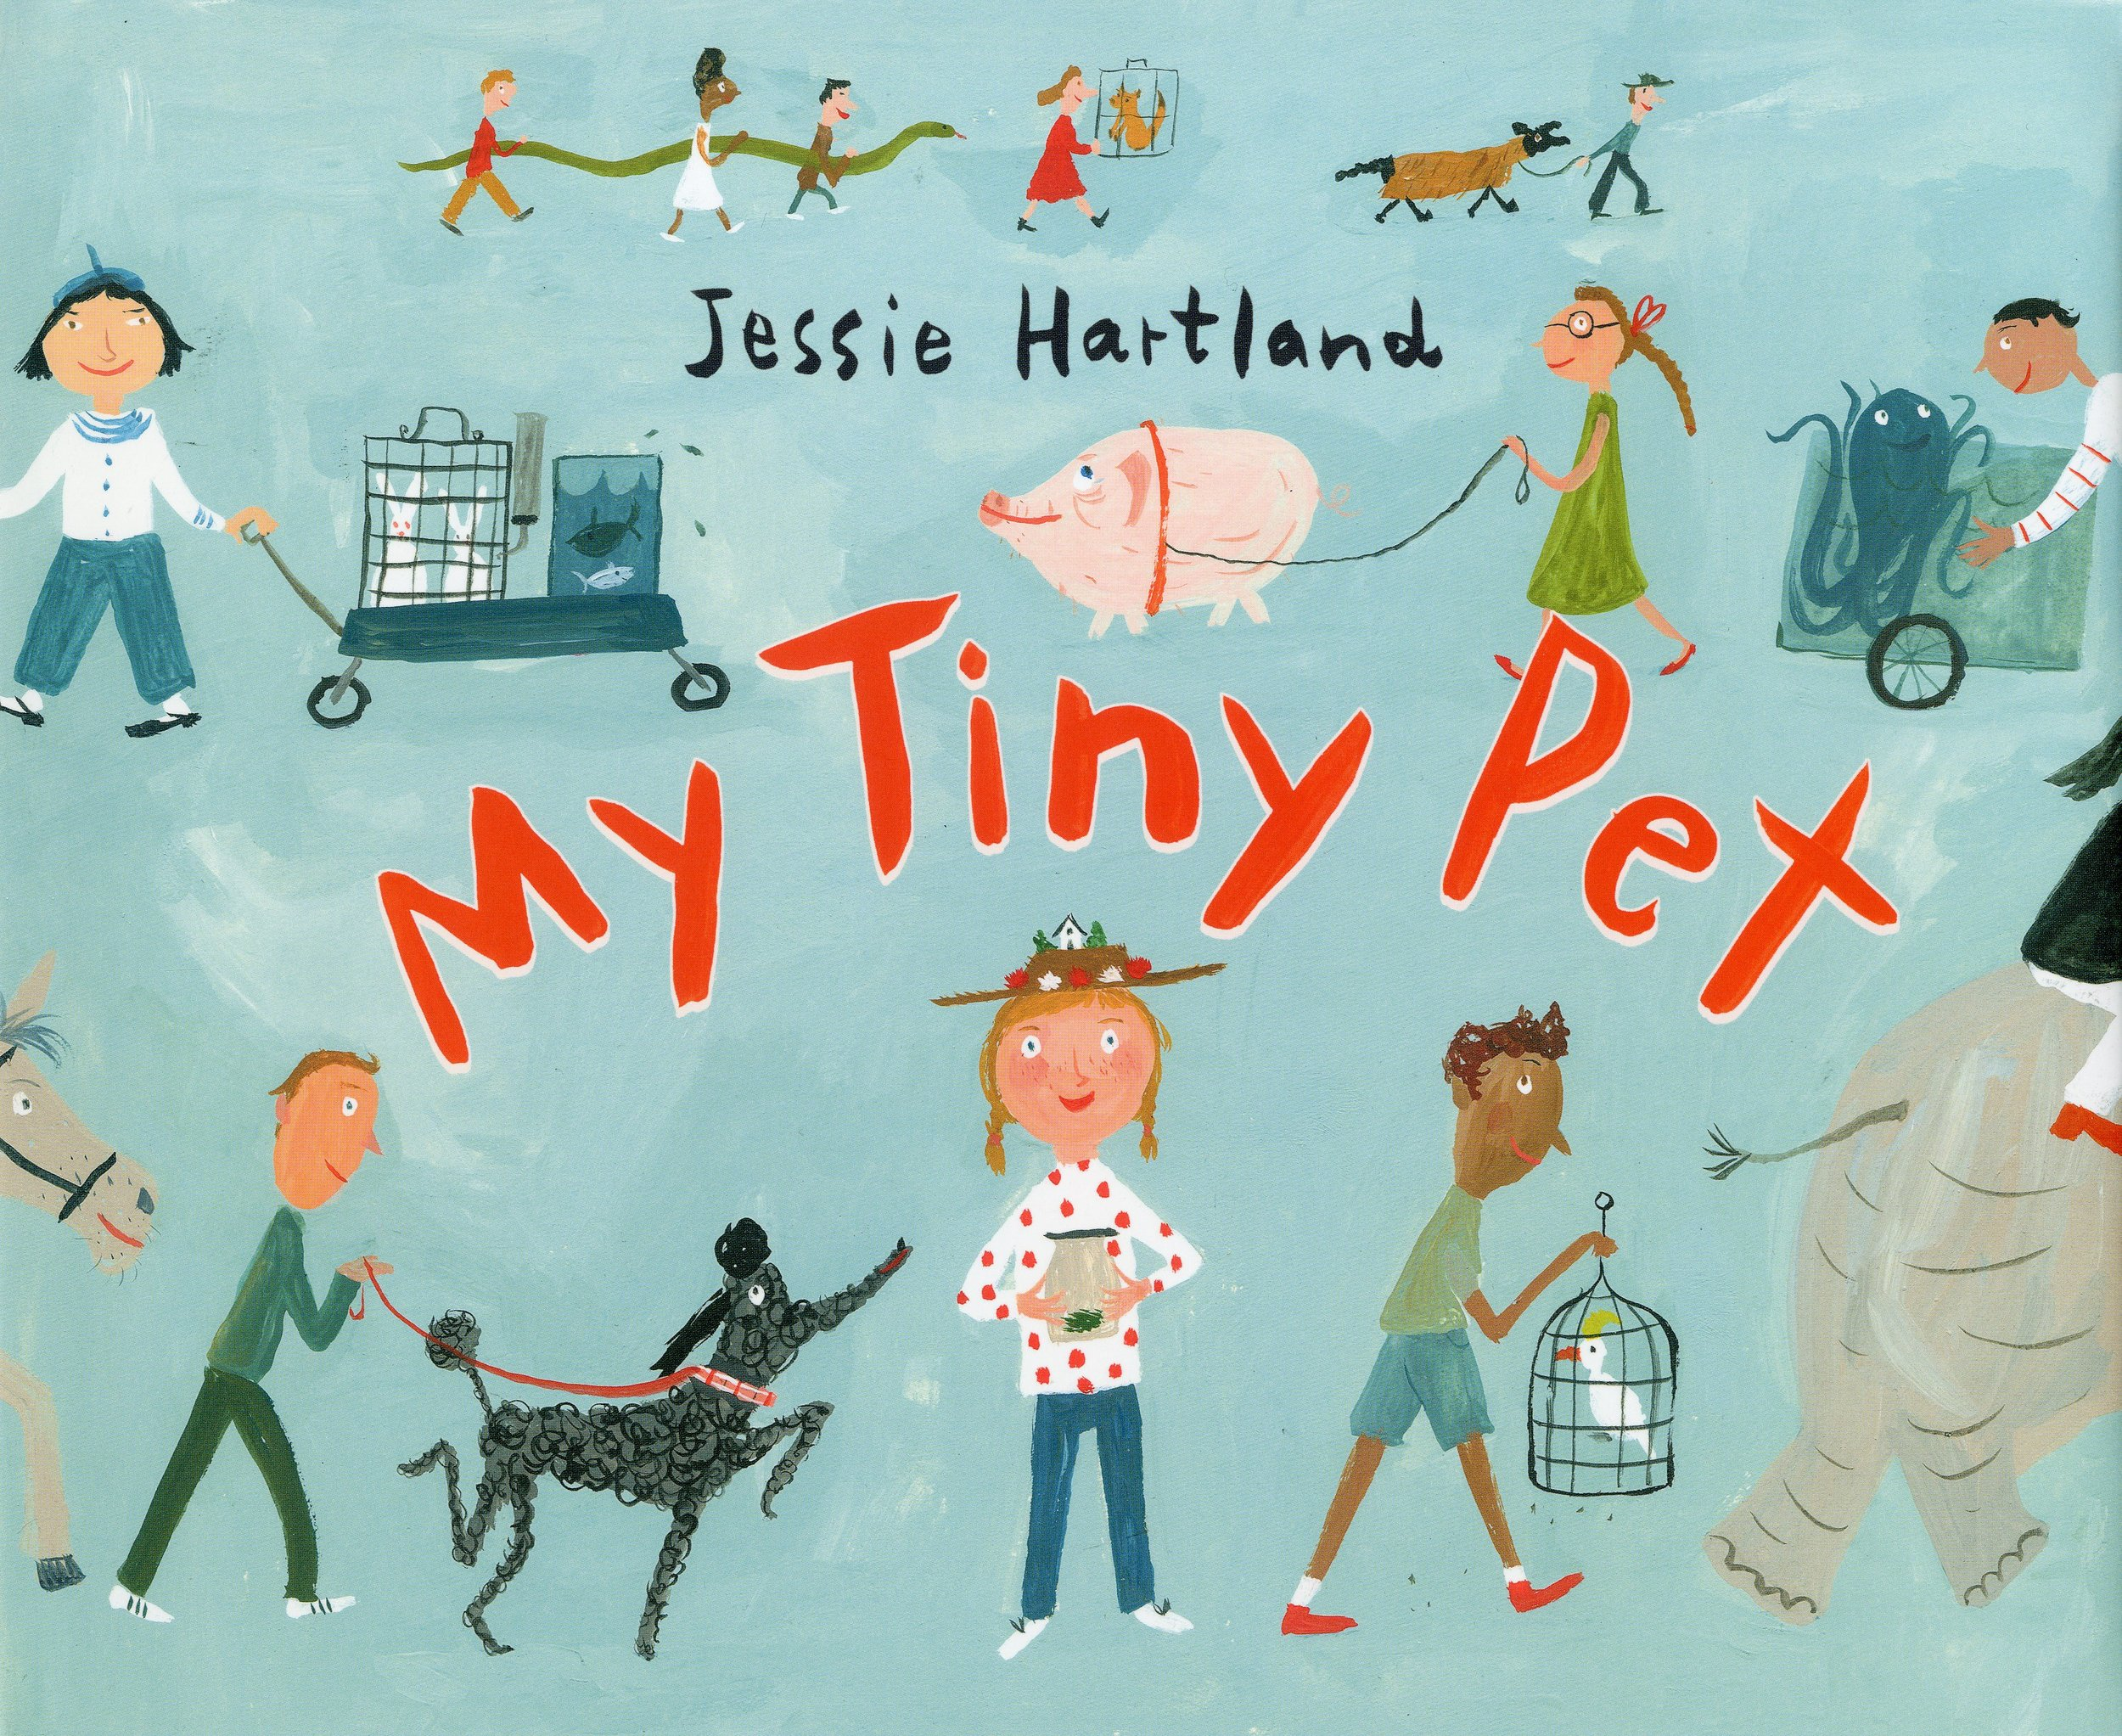 My Tiny Pet by Jessie Hartland - Author/illustrator, Jessie Hartland, brings you her hilarious new book on keeping the world's tiniest pet. Can you guess what it is?